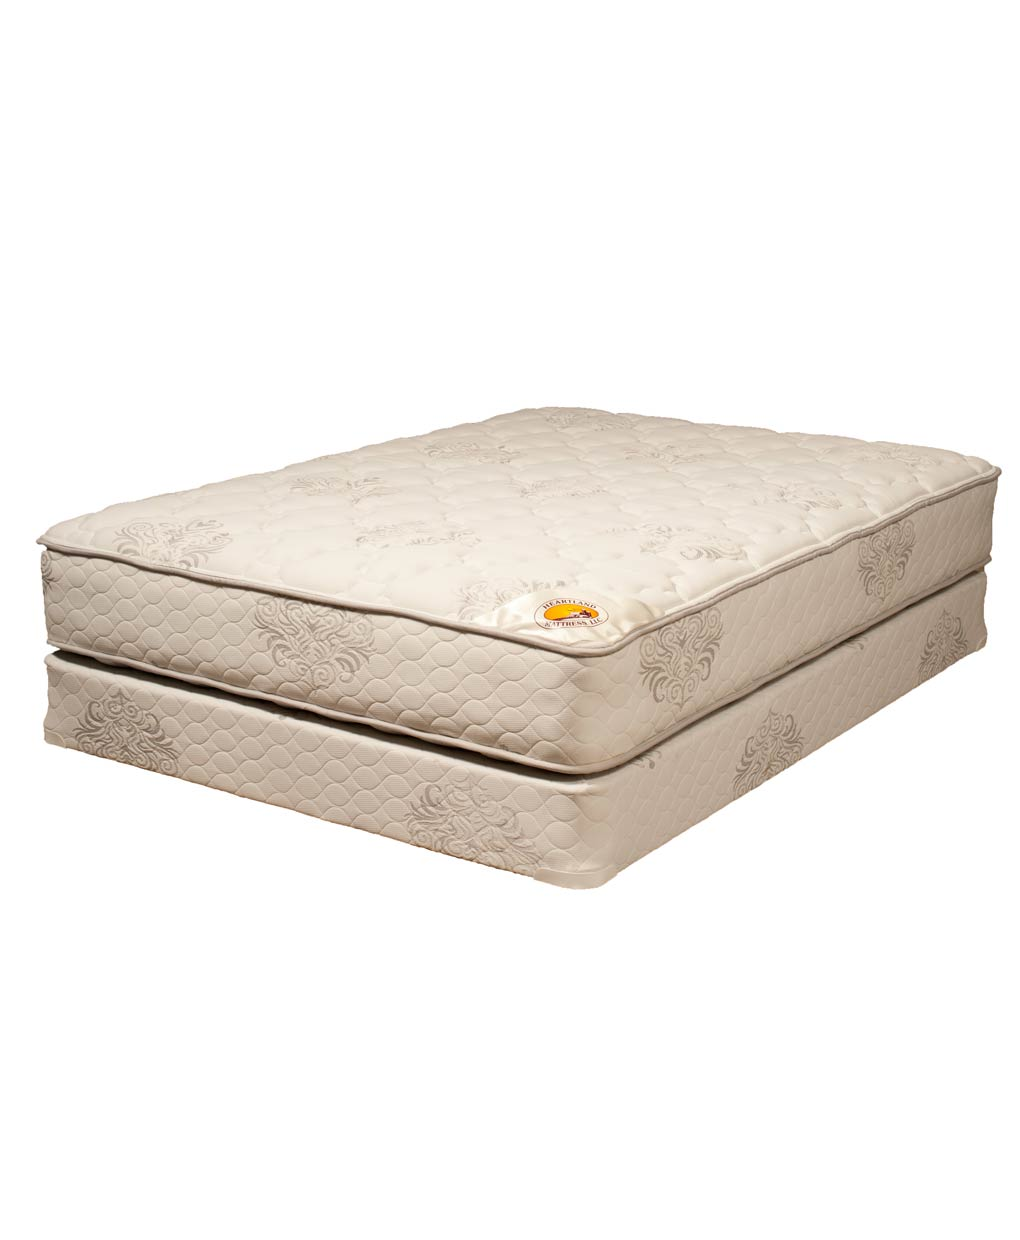 Heirloom Mattress Set - Amish Direct Furniture